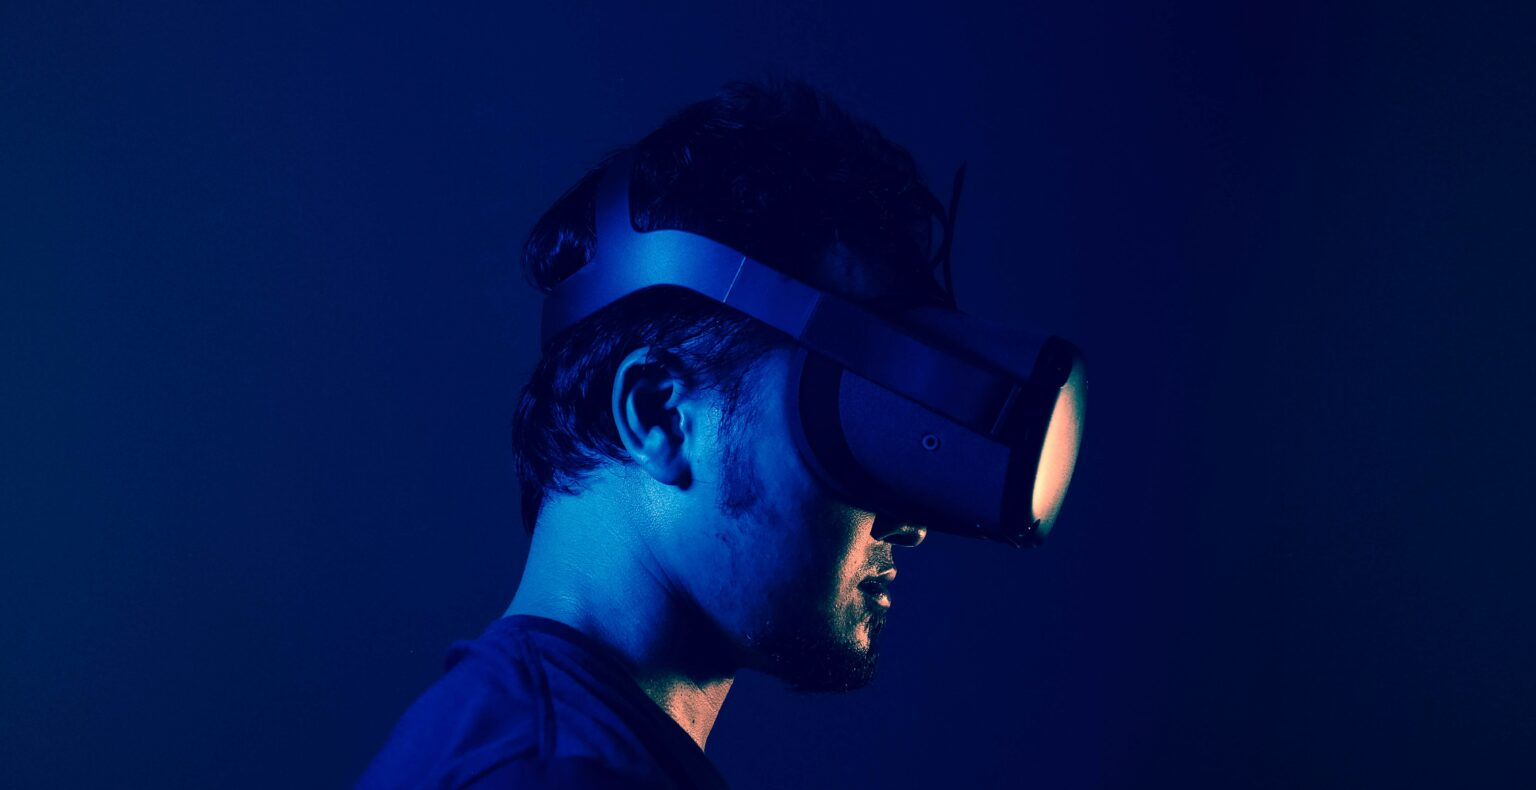 Apple could take on the likes of Oculus with a VR headset as early as 2022.